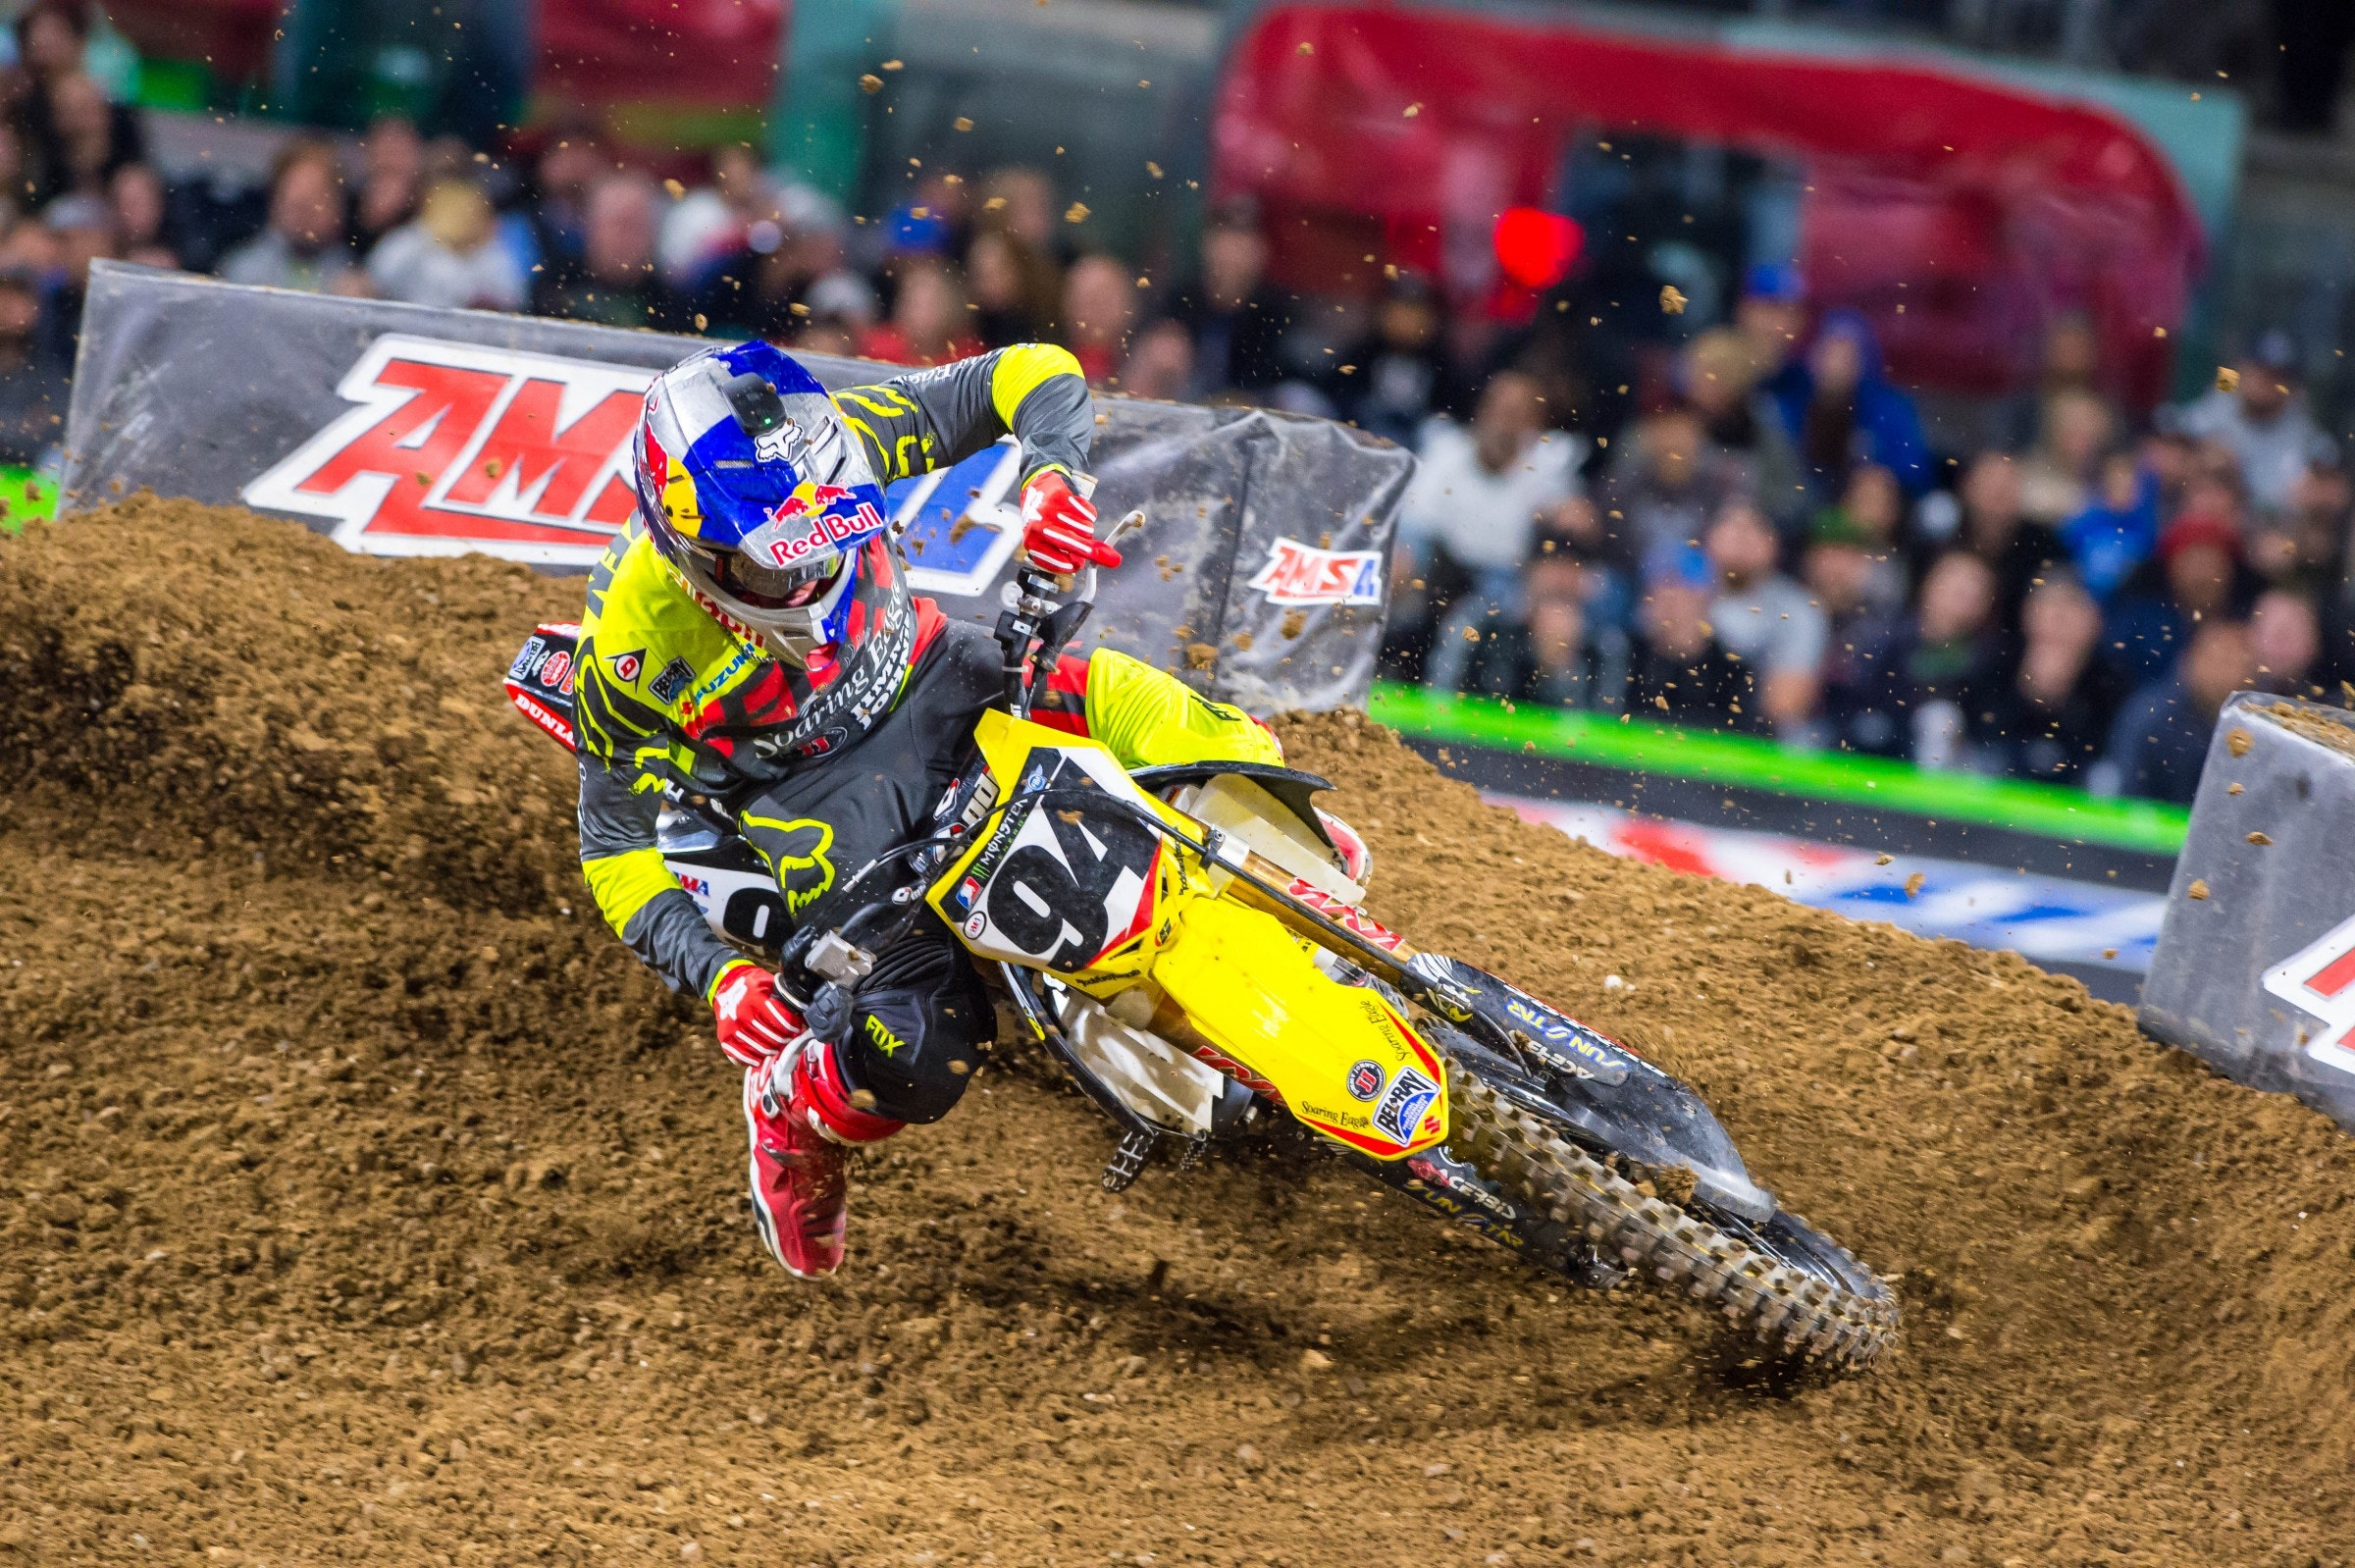 Roczen went off the track before he could fight for the SD1 win. Now he's coming in with a little momentum, and he needs it to catch Dungey in points.